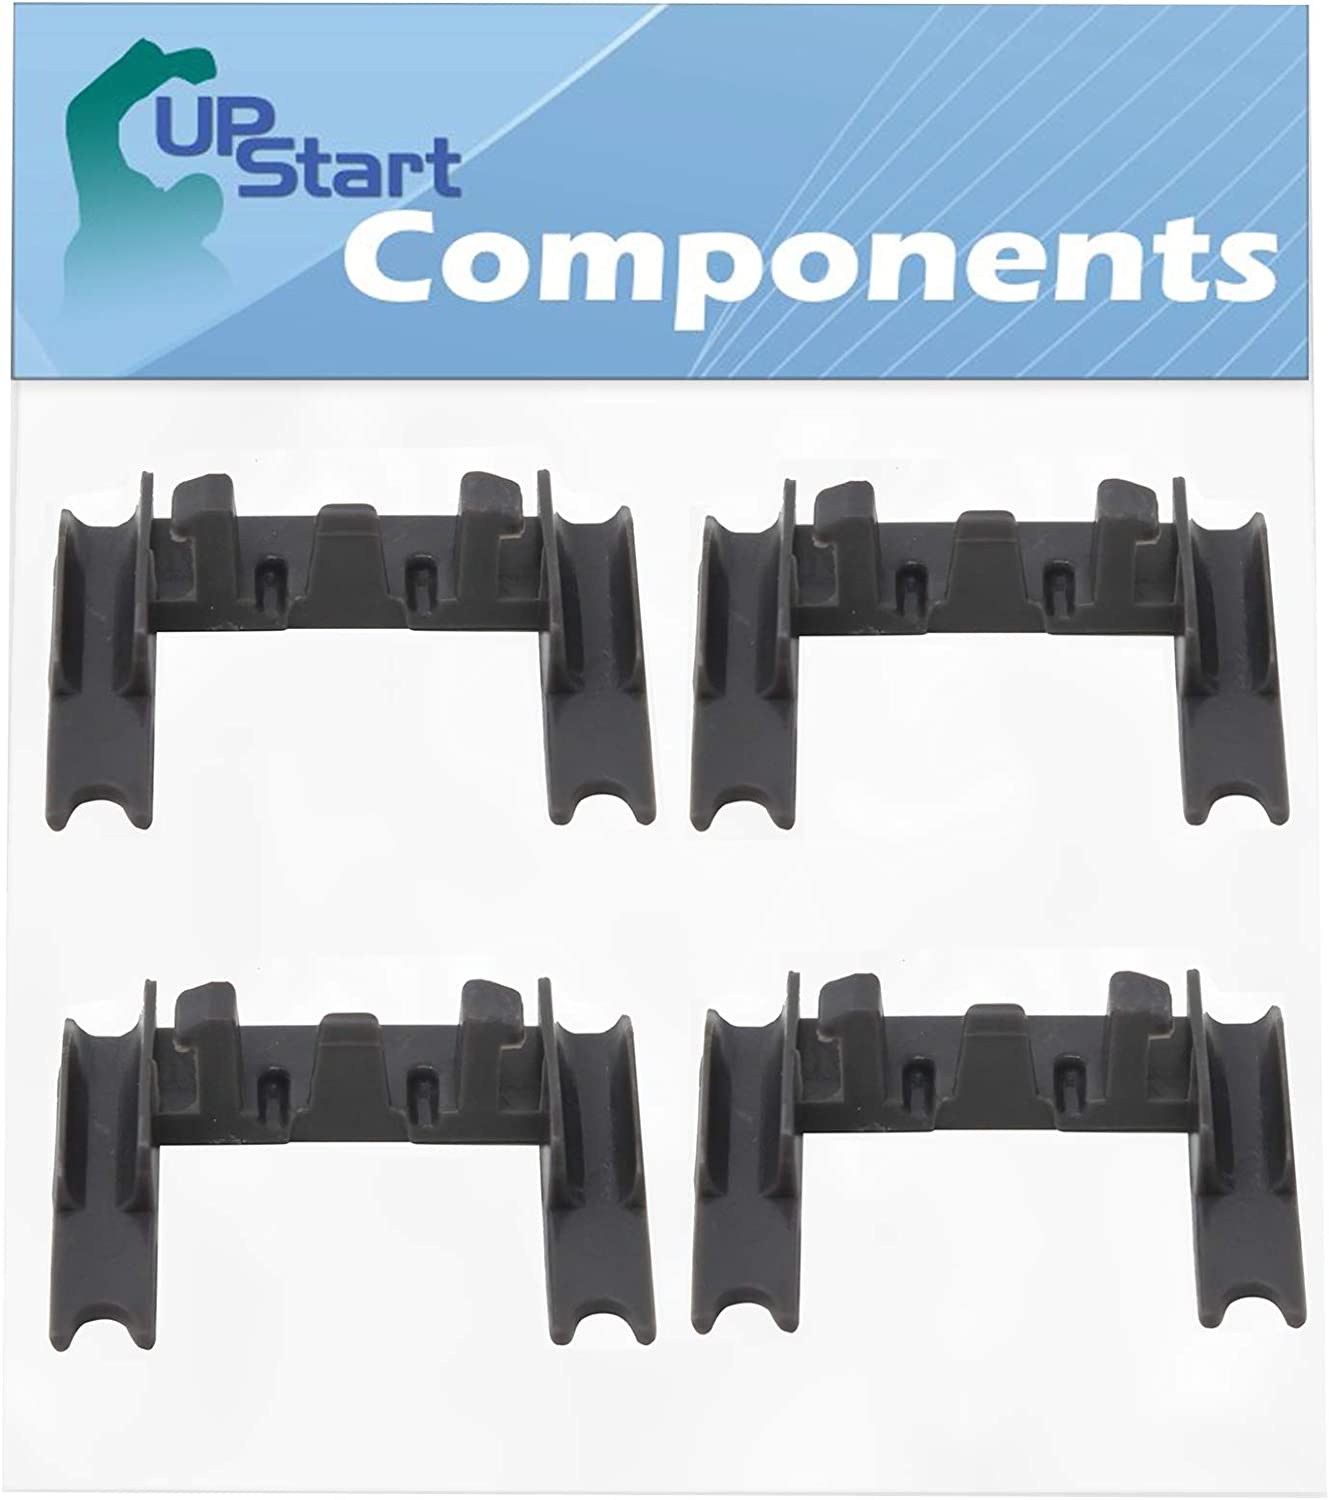 4-Pack W10250160 Dishwasher Rack Adjuster Arm Clip Lock Replacement for Kenmore/Sears 665.13973K015 - Compatible with WPW10250160 Stop Clip